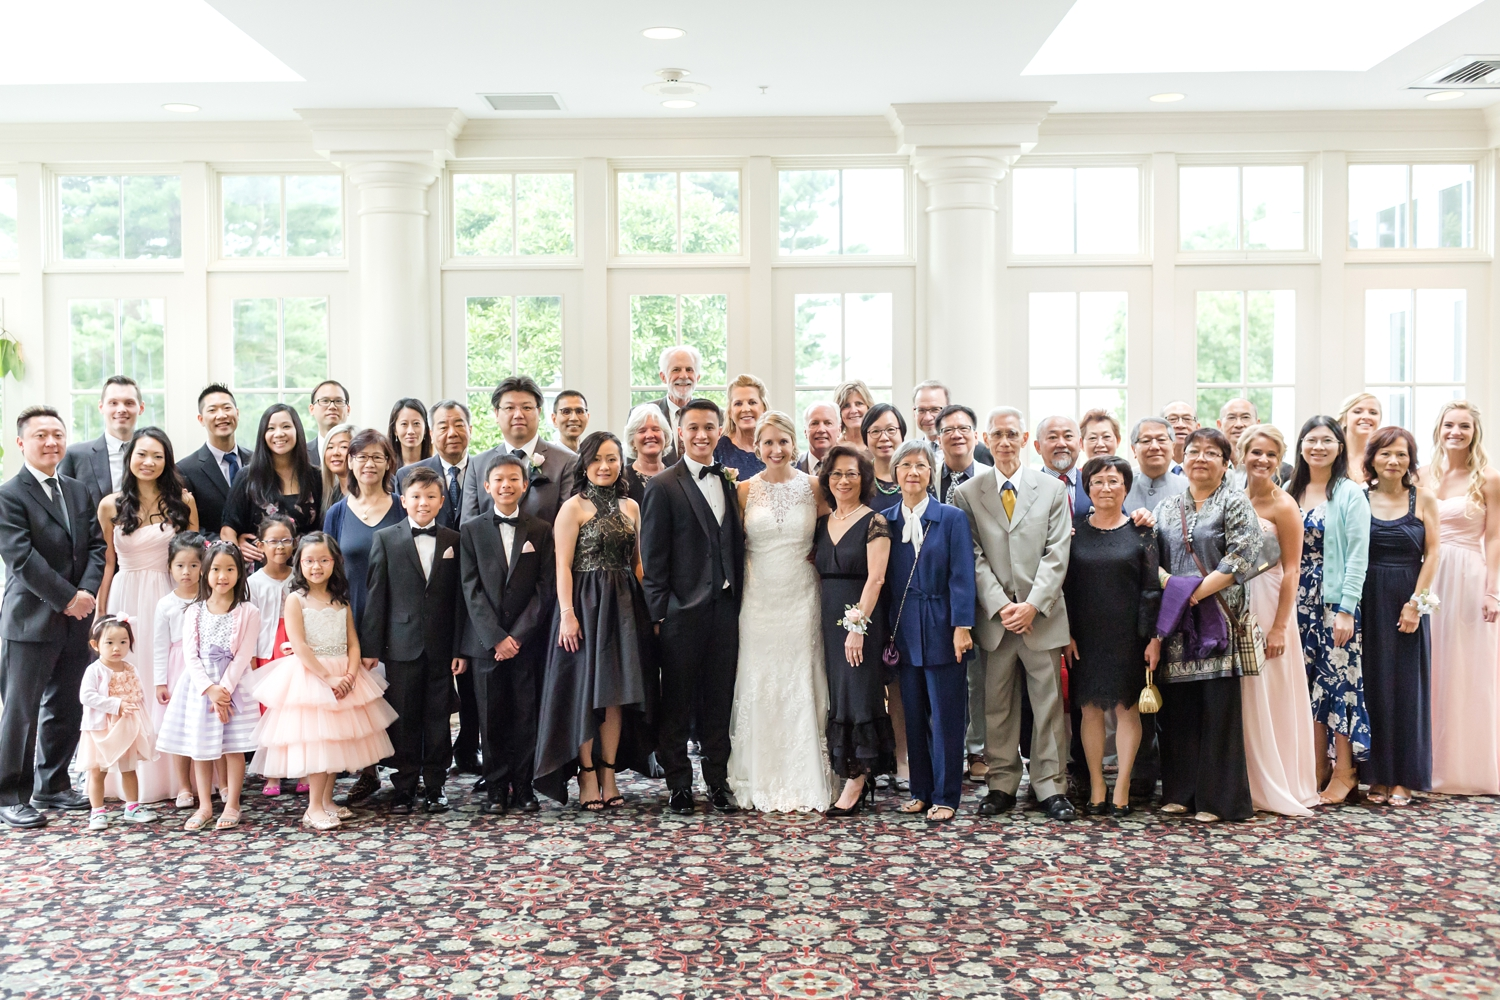 WONG WEDDING HIGHLIGHTS-359_Deerfield-Country-Club-Wedding-Delaware-Maryland-wedding-photographer-anna-grace-photography-photo.jpg